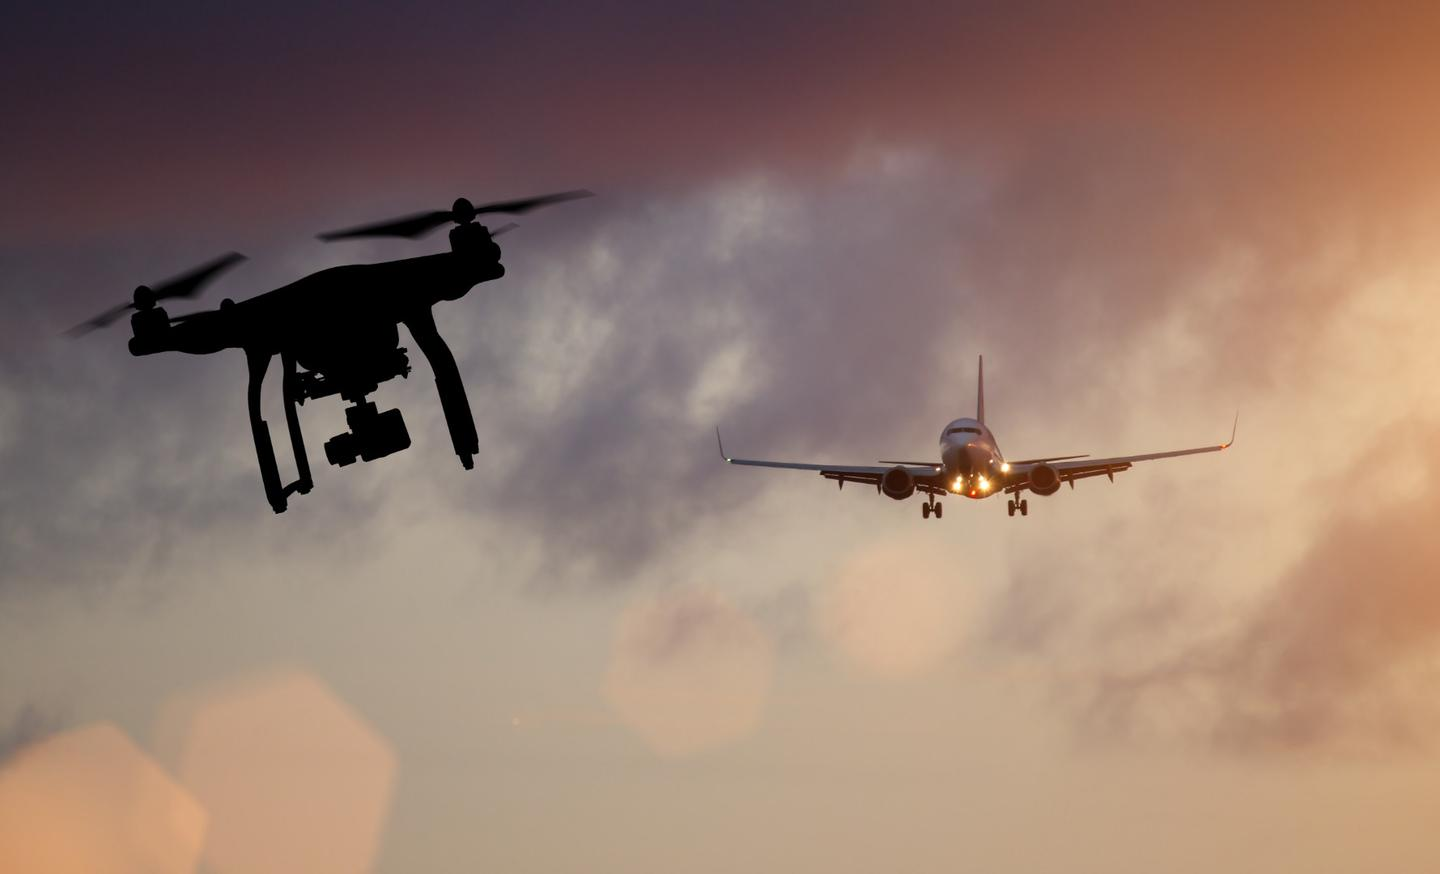 The system could be used at locations such as airports